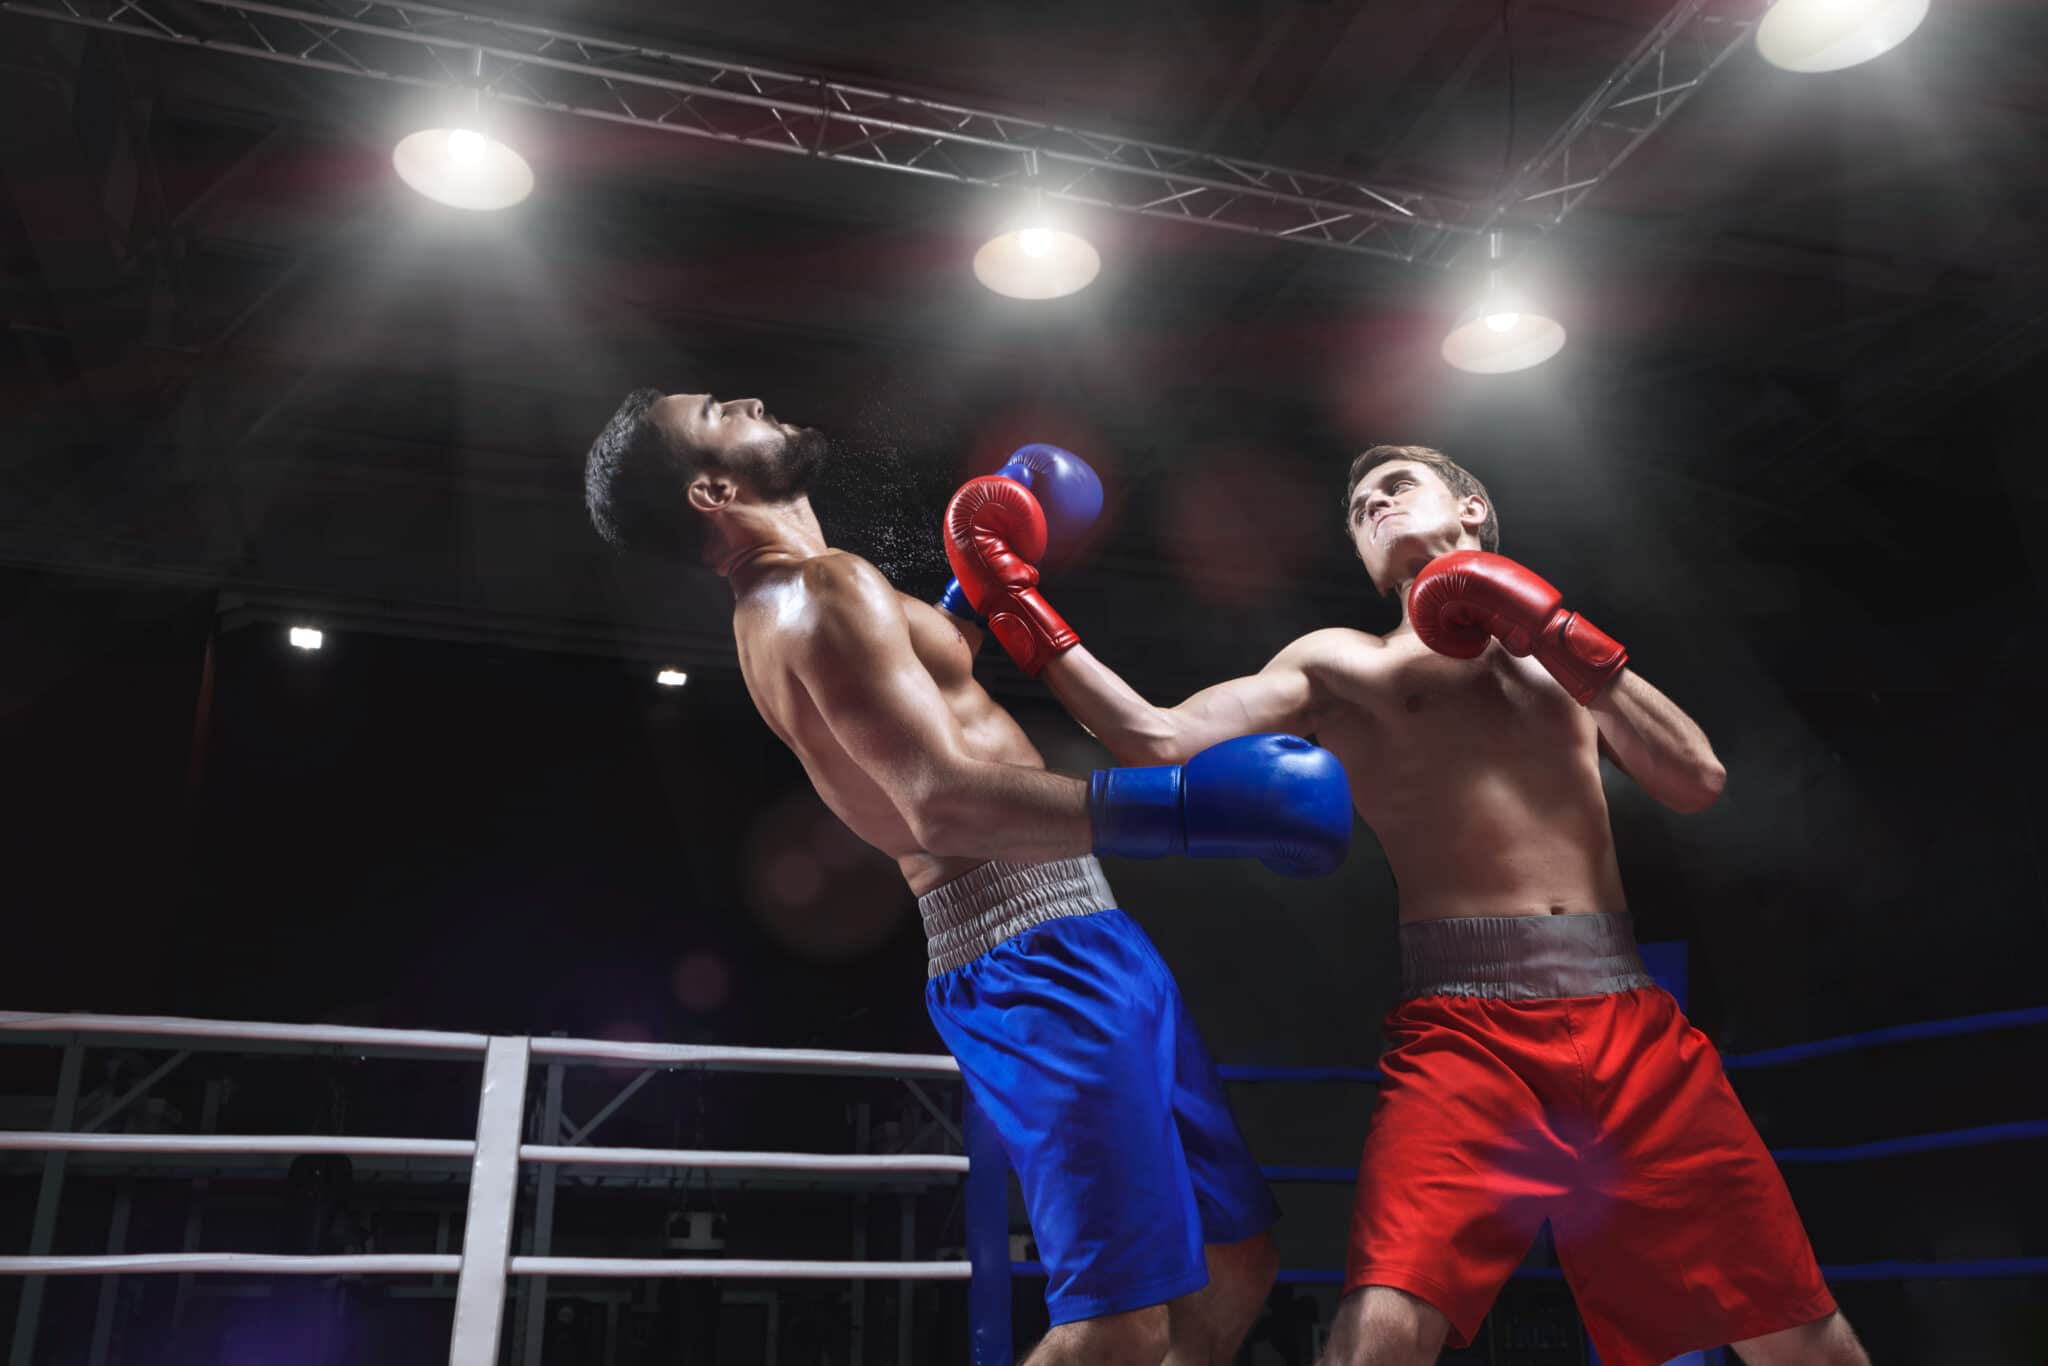 The Marketing Heavyweight Match - May the Best Idea Win